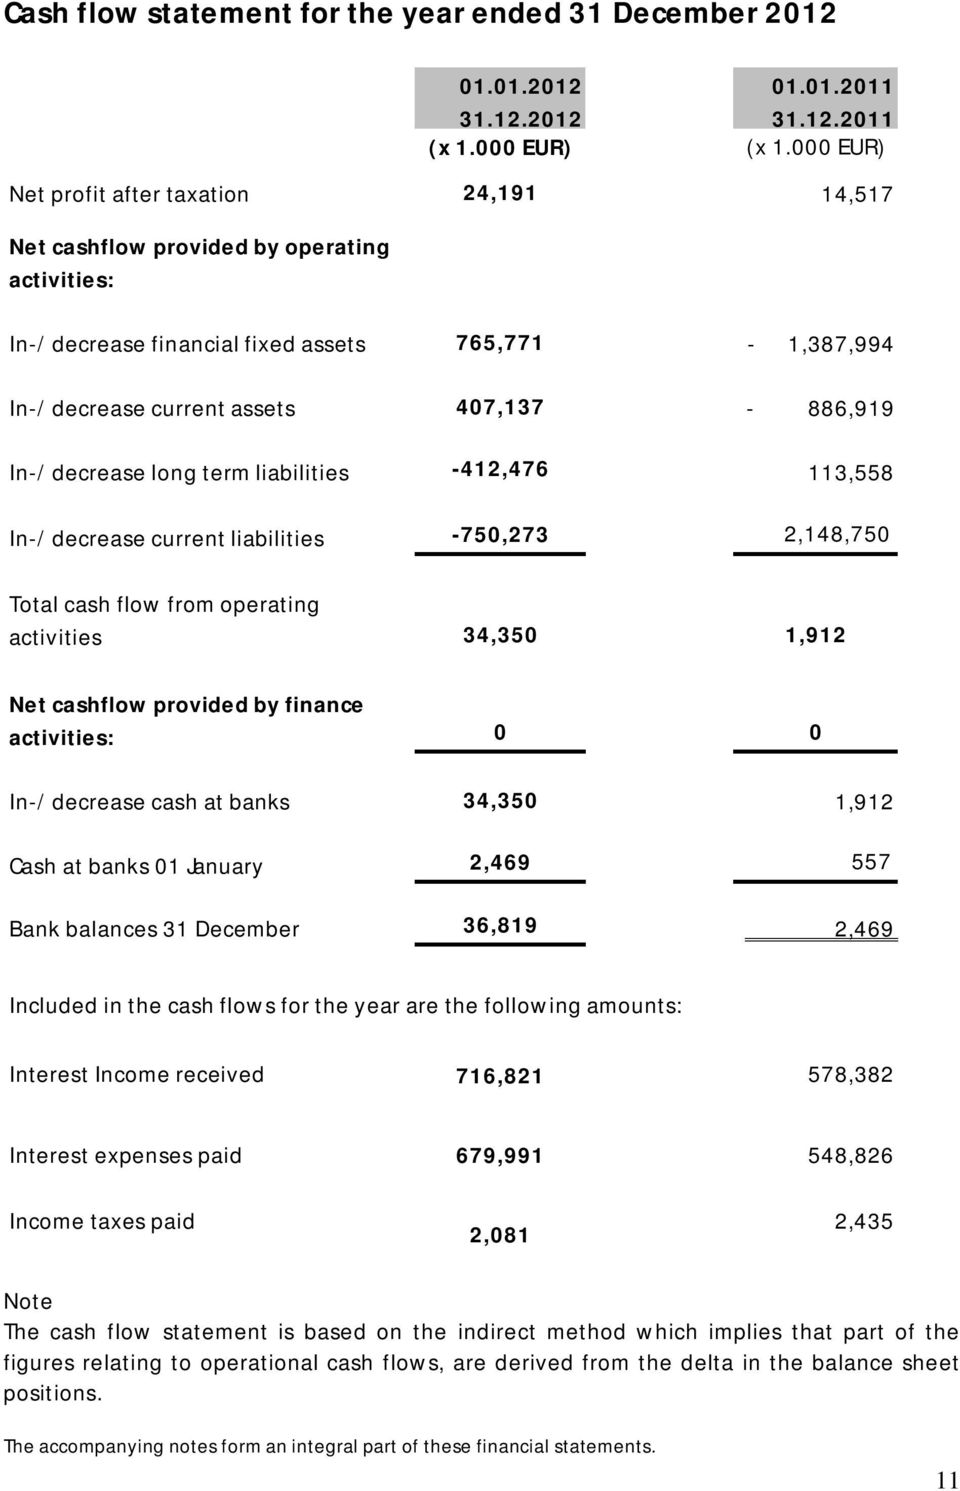 In-/decrease long term liabilities -412,476 113,558 In-/decrease current liabilities -750,273 2,148,750 Total cash flow from operating activities 34,350 1,912 Net cashflow provided by finance